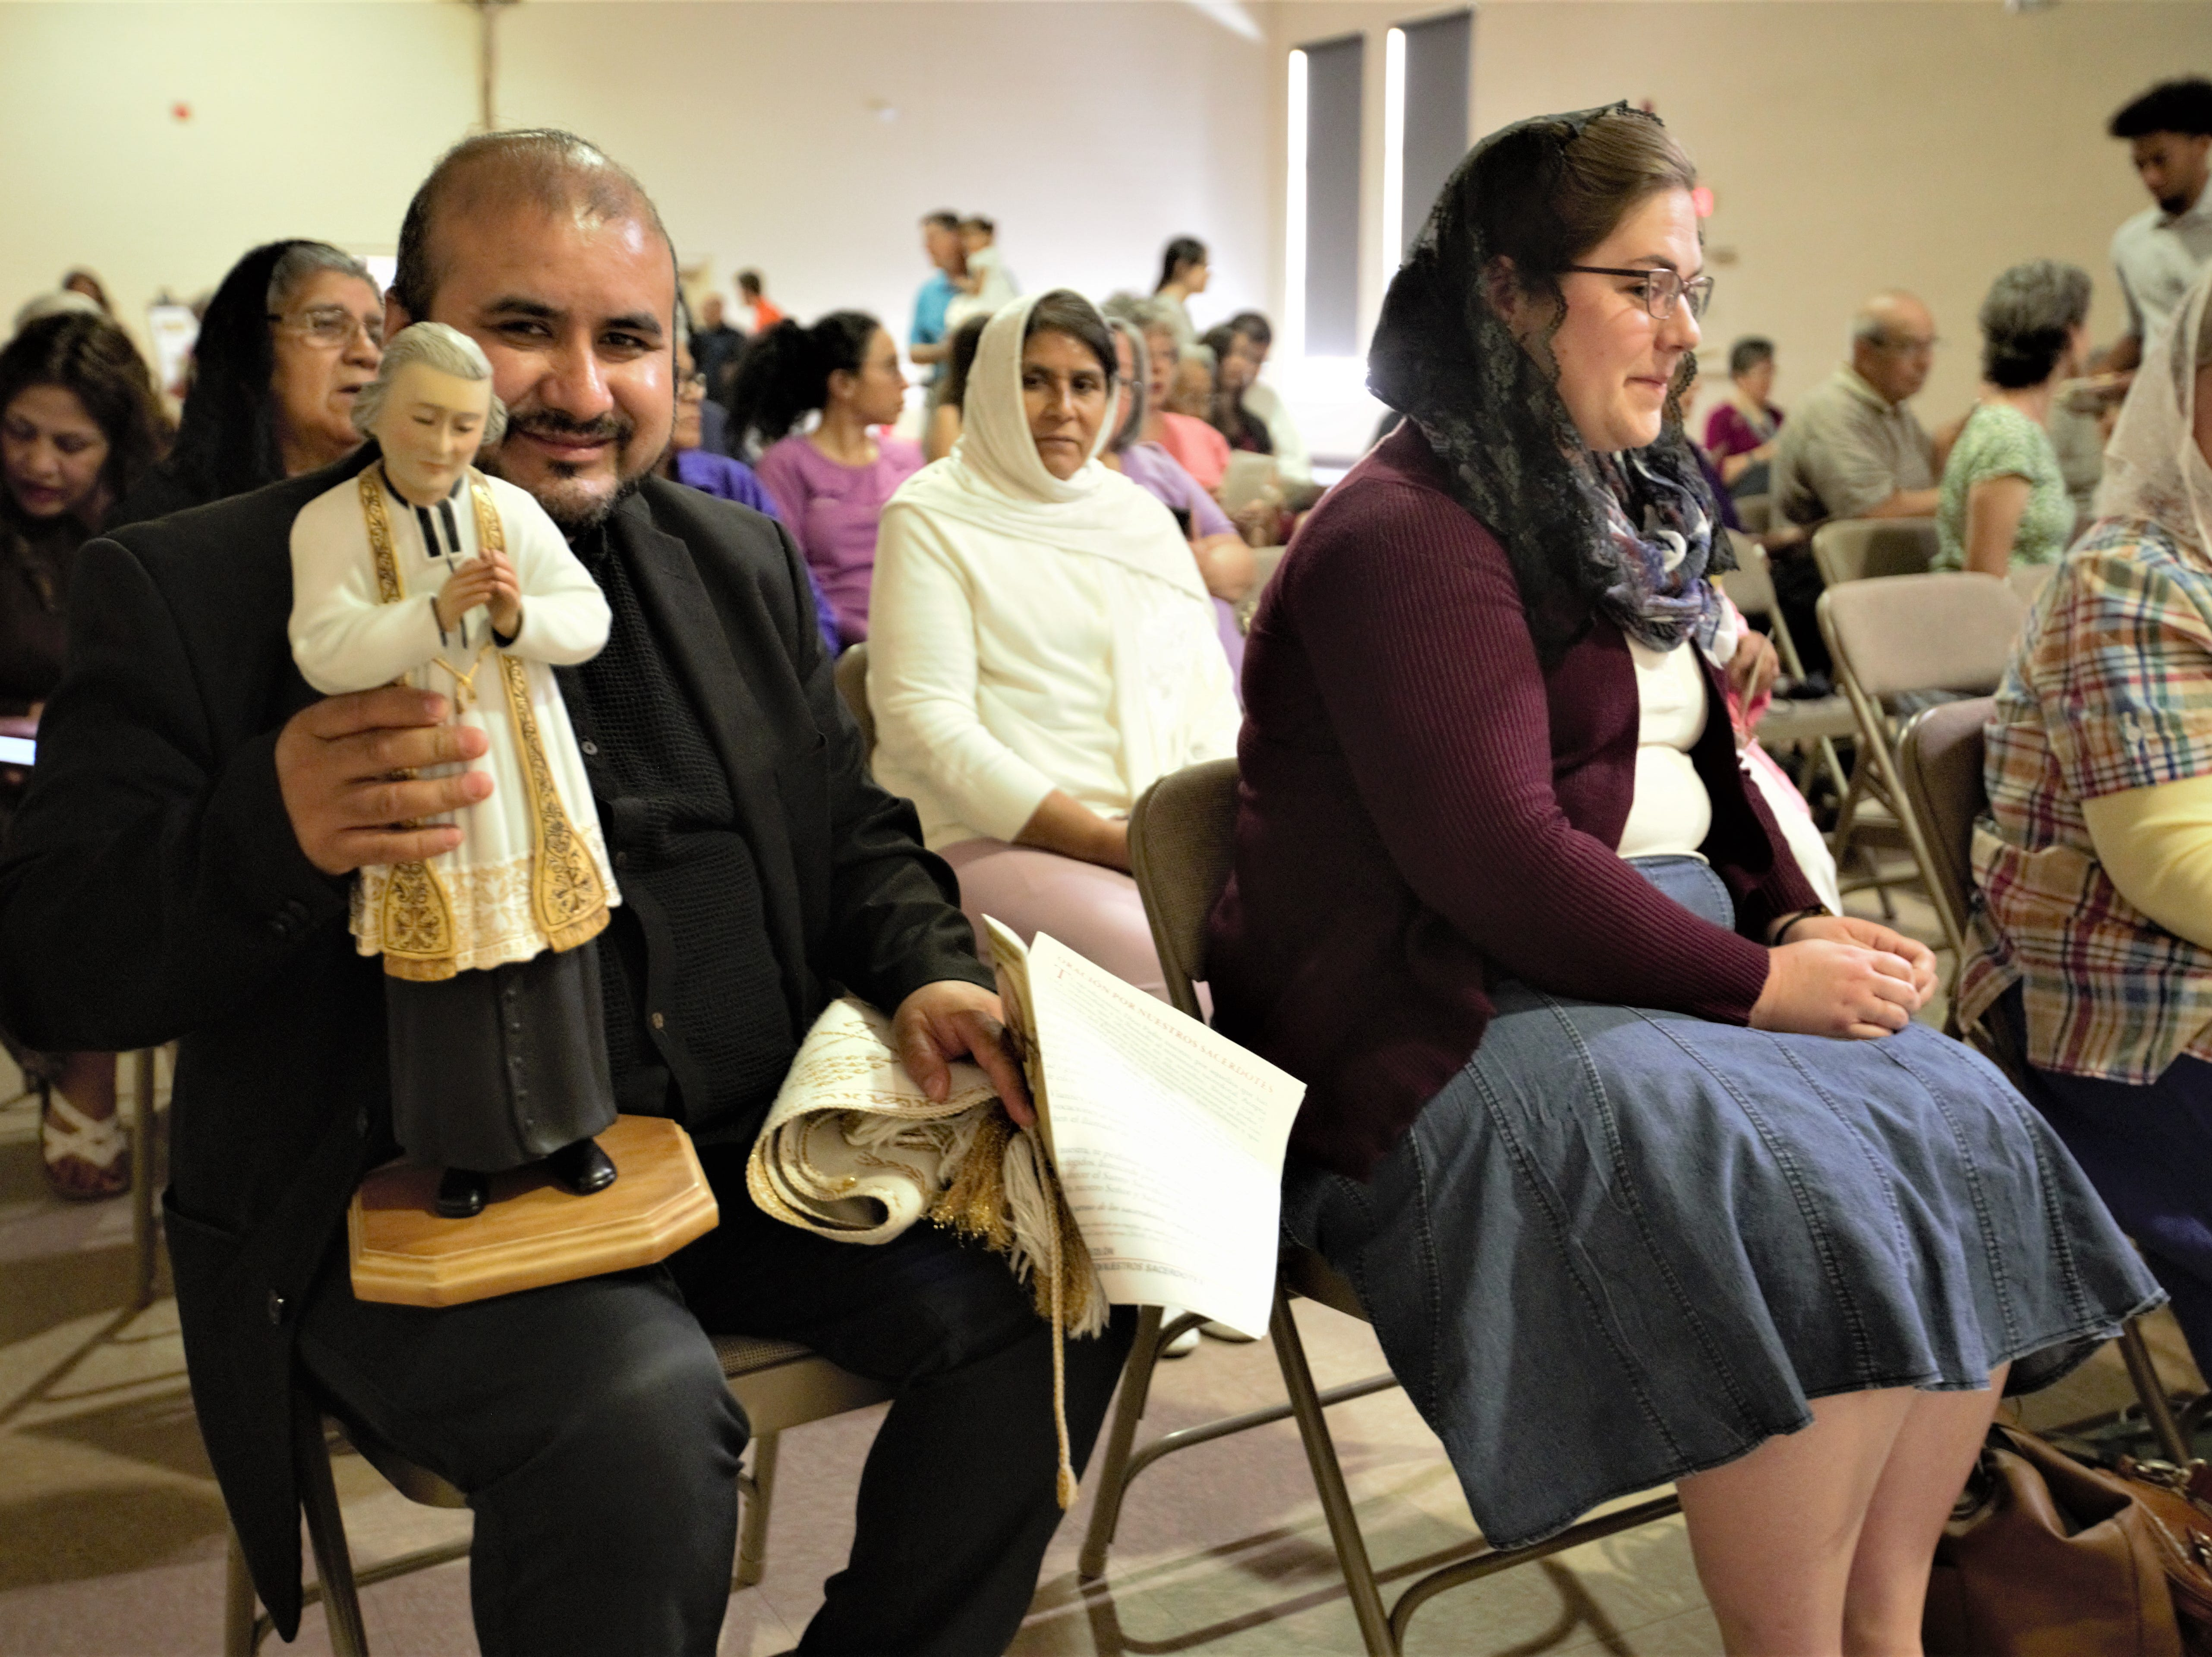 Rev. Alejandro Reyes of Our Lord of Mercy Catholic Church in Las Cruces holds a statue of St. Jean Vianney during a veneration of the saint at the Cathedral of the Immaculate Heart of Mary on Tuesday, May 7, 2019.